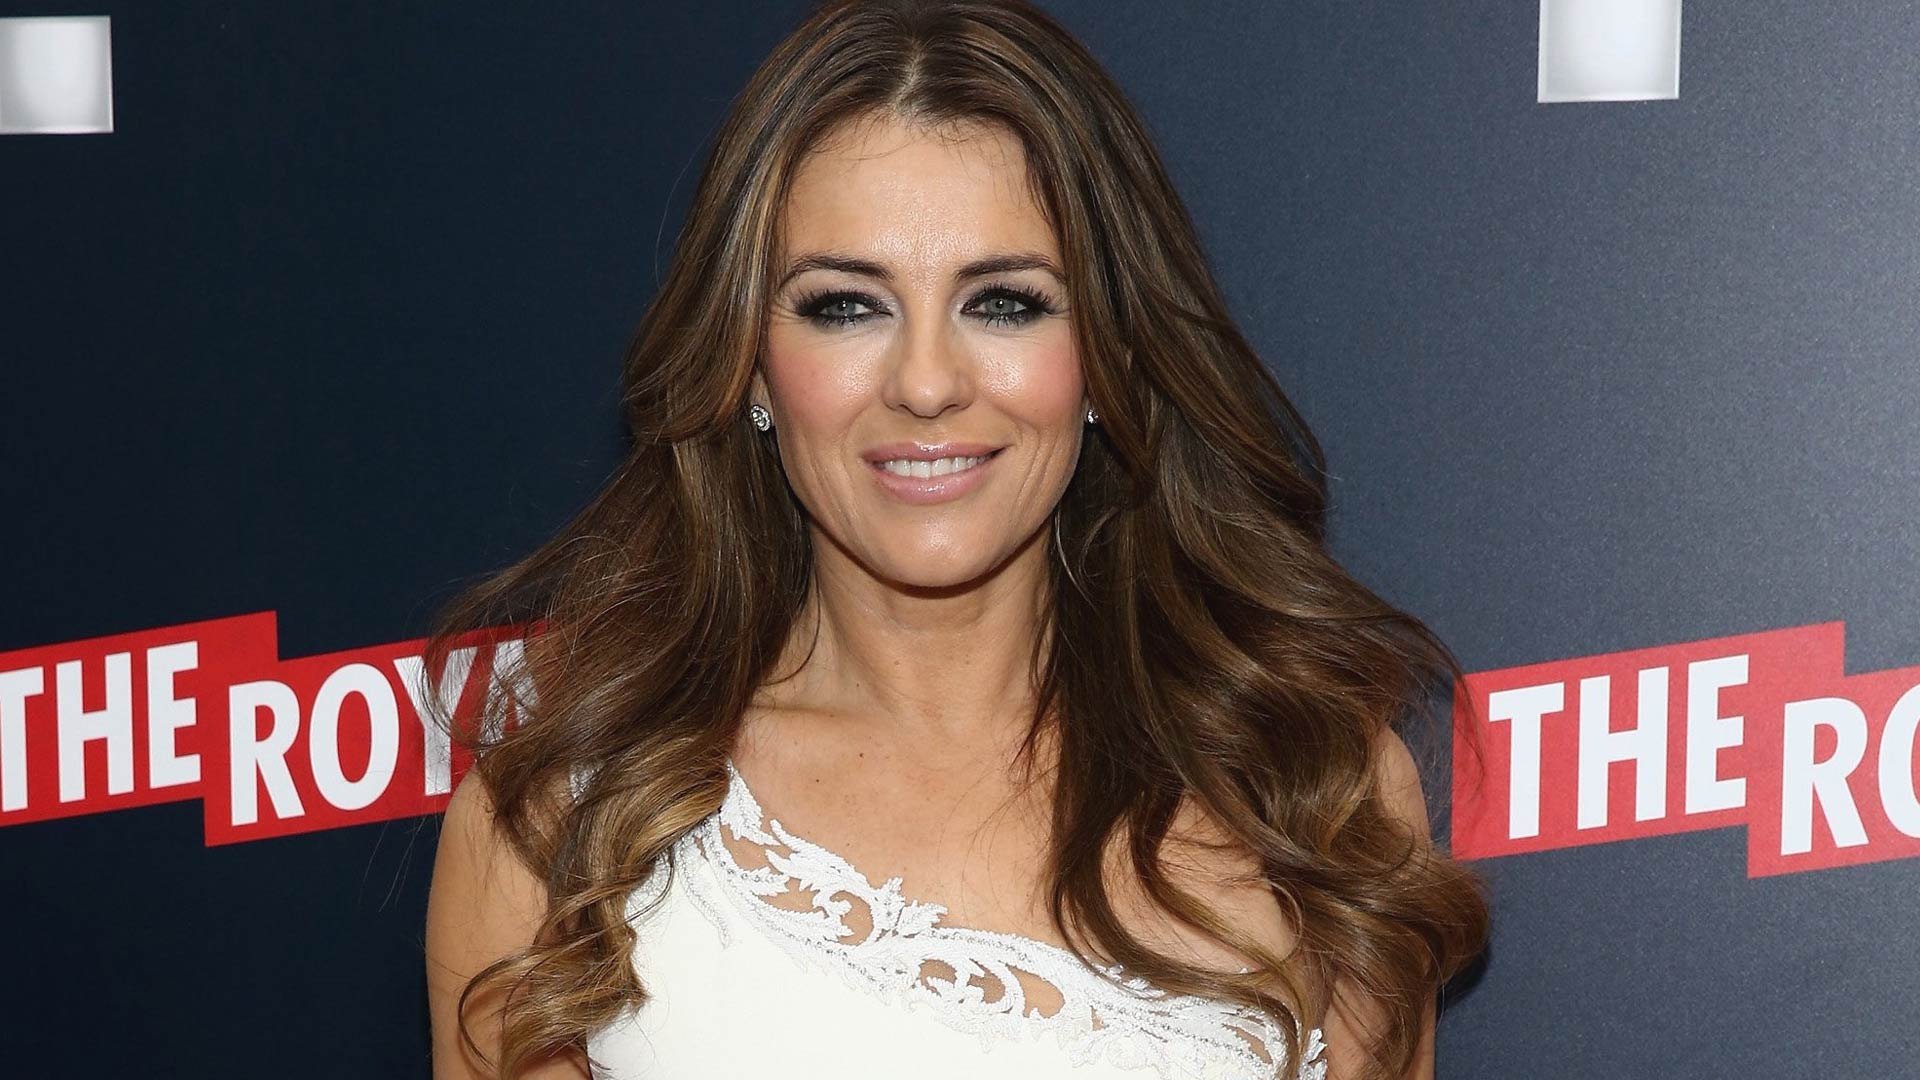 Elizabeth Hurley Celebrity Wallpaper 53662 1920x1080 px ...